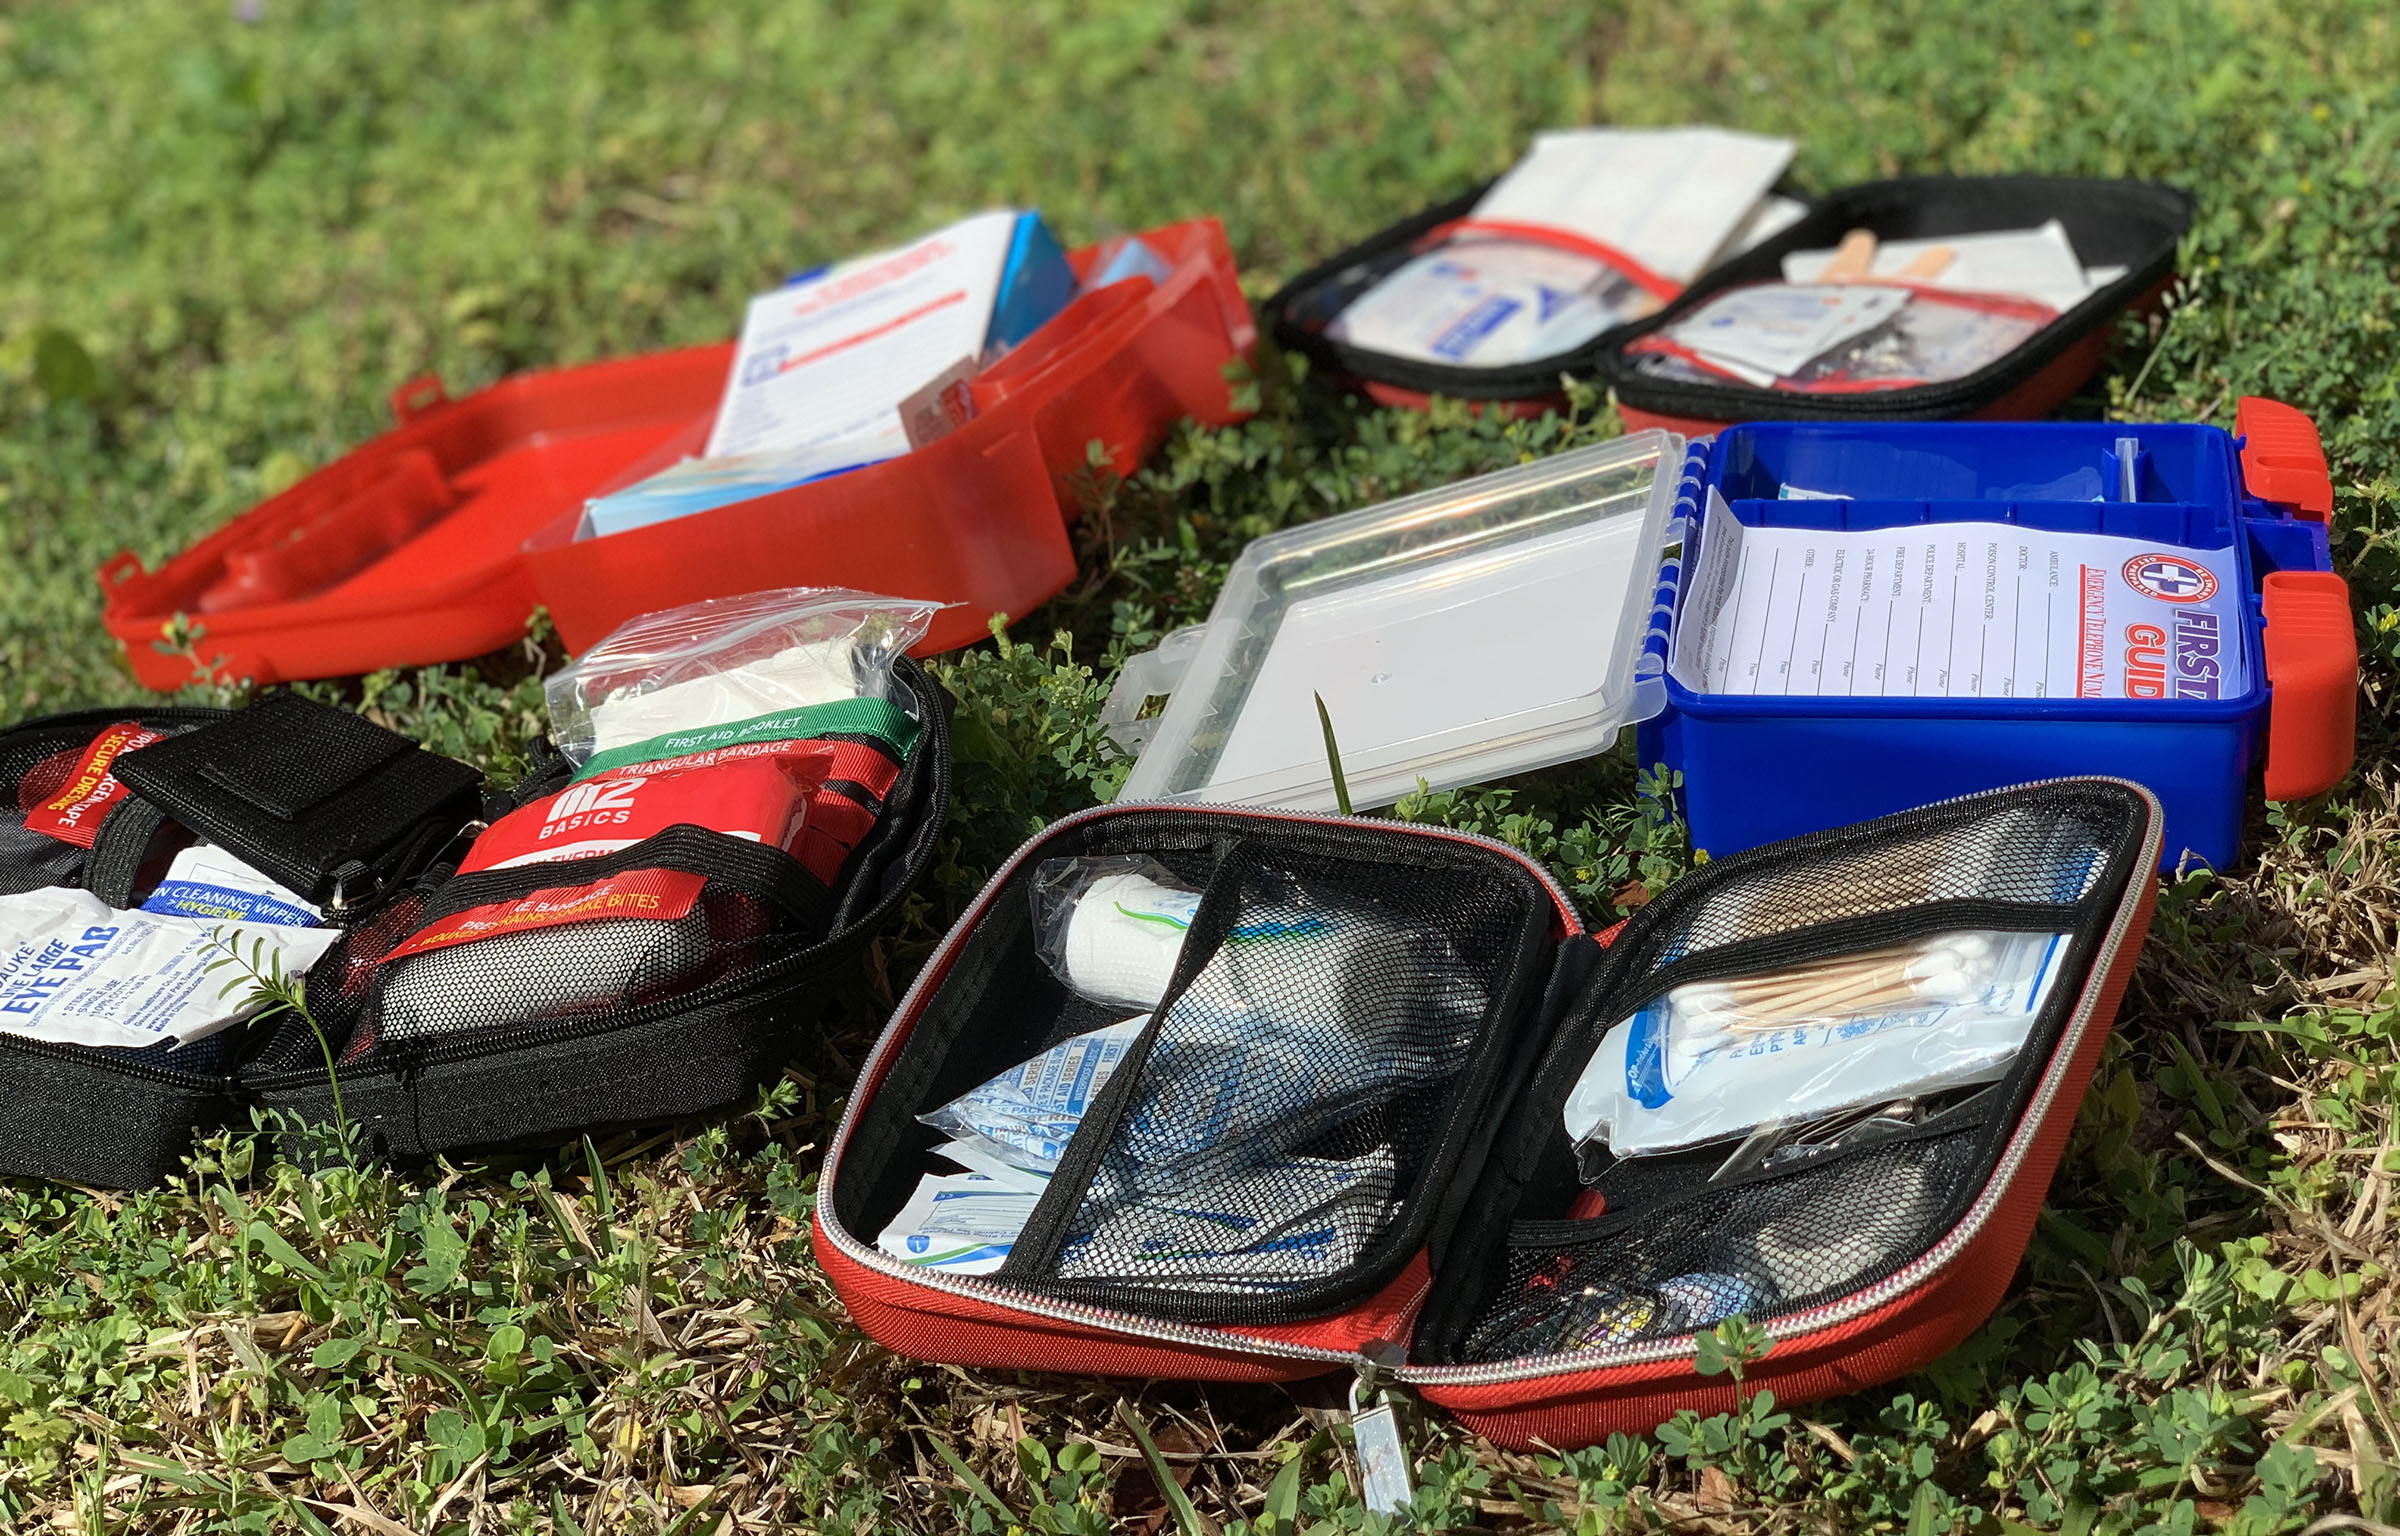 5 First Aid Kits on Grass